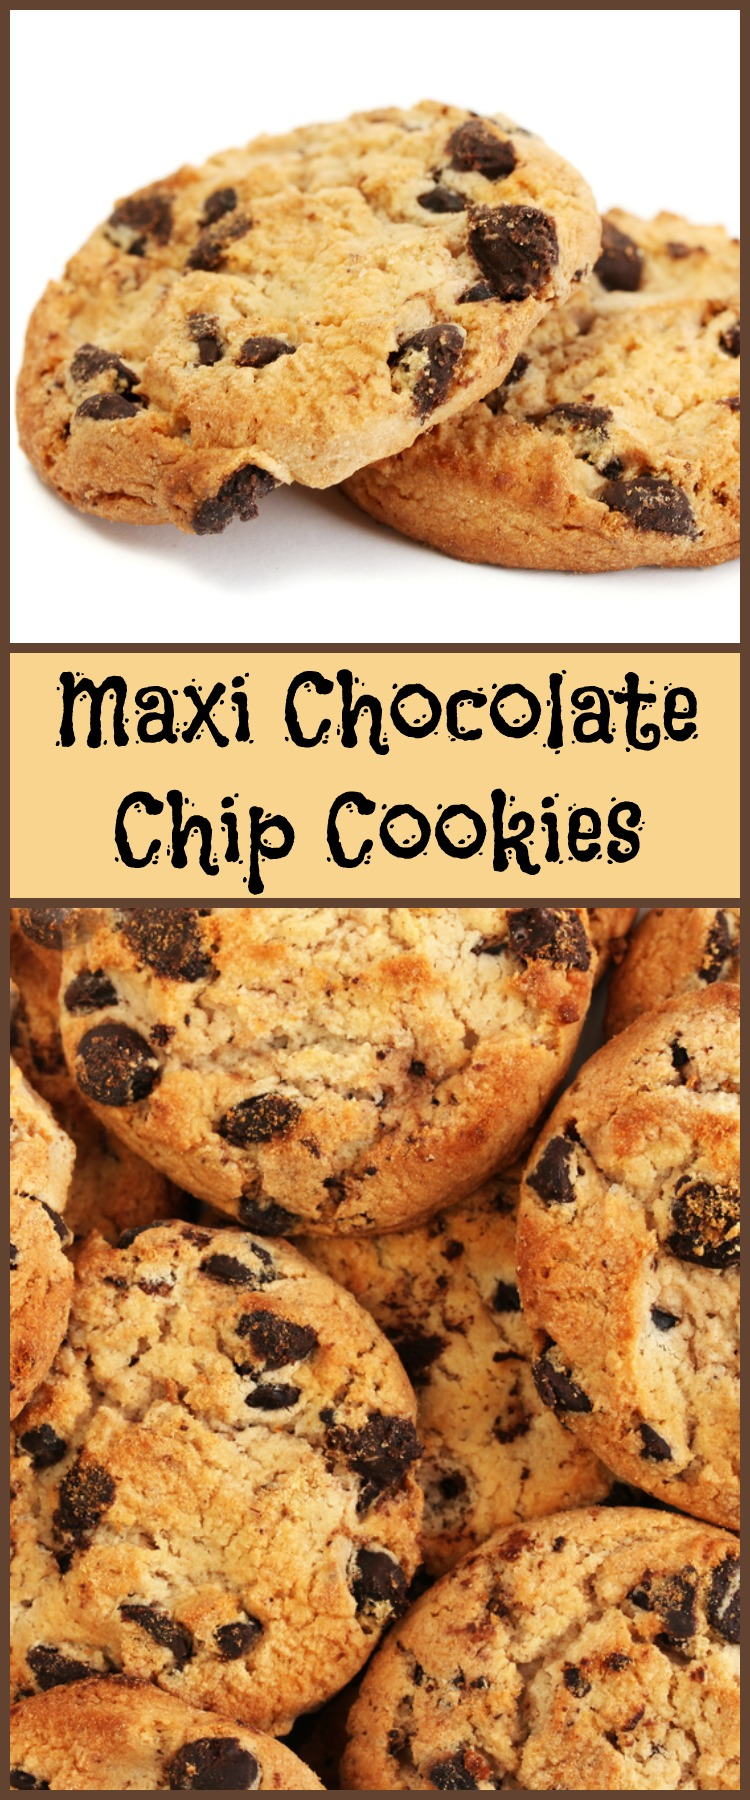 maxi-chocolate-chip-cookies